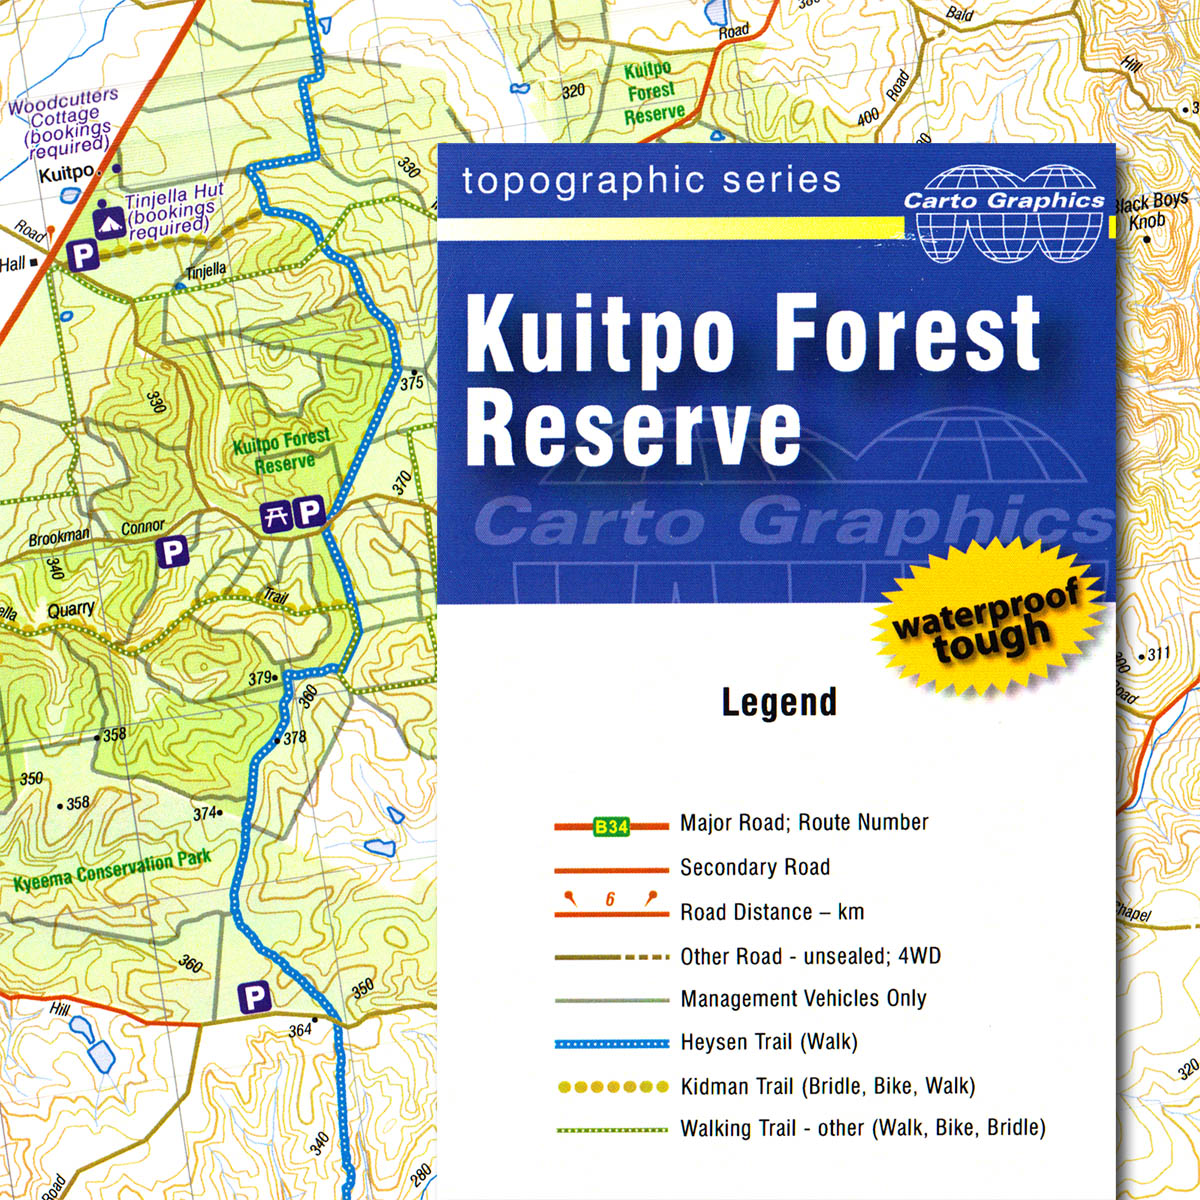 Kuitpo Forest Reserve topographic map The Friends of the Heysen Trail